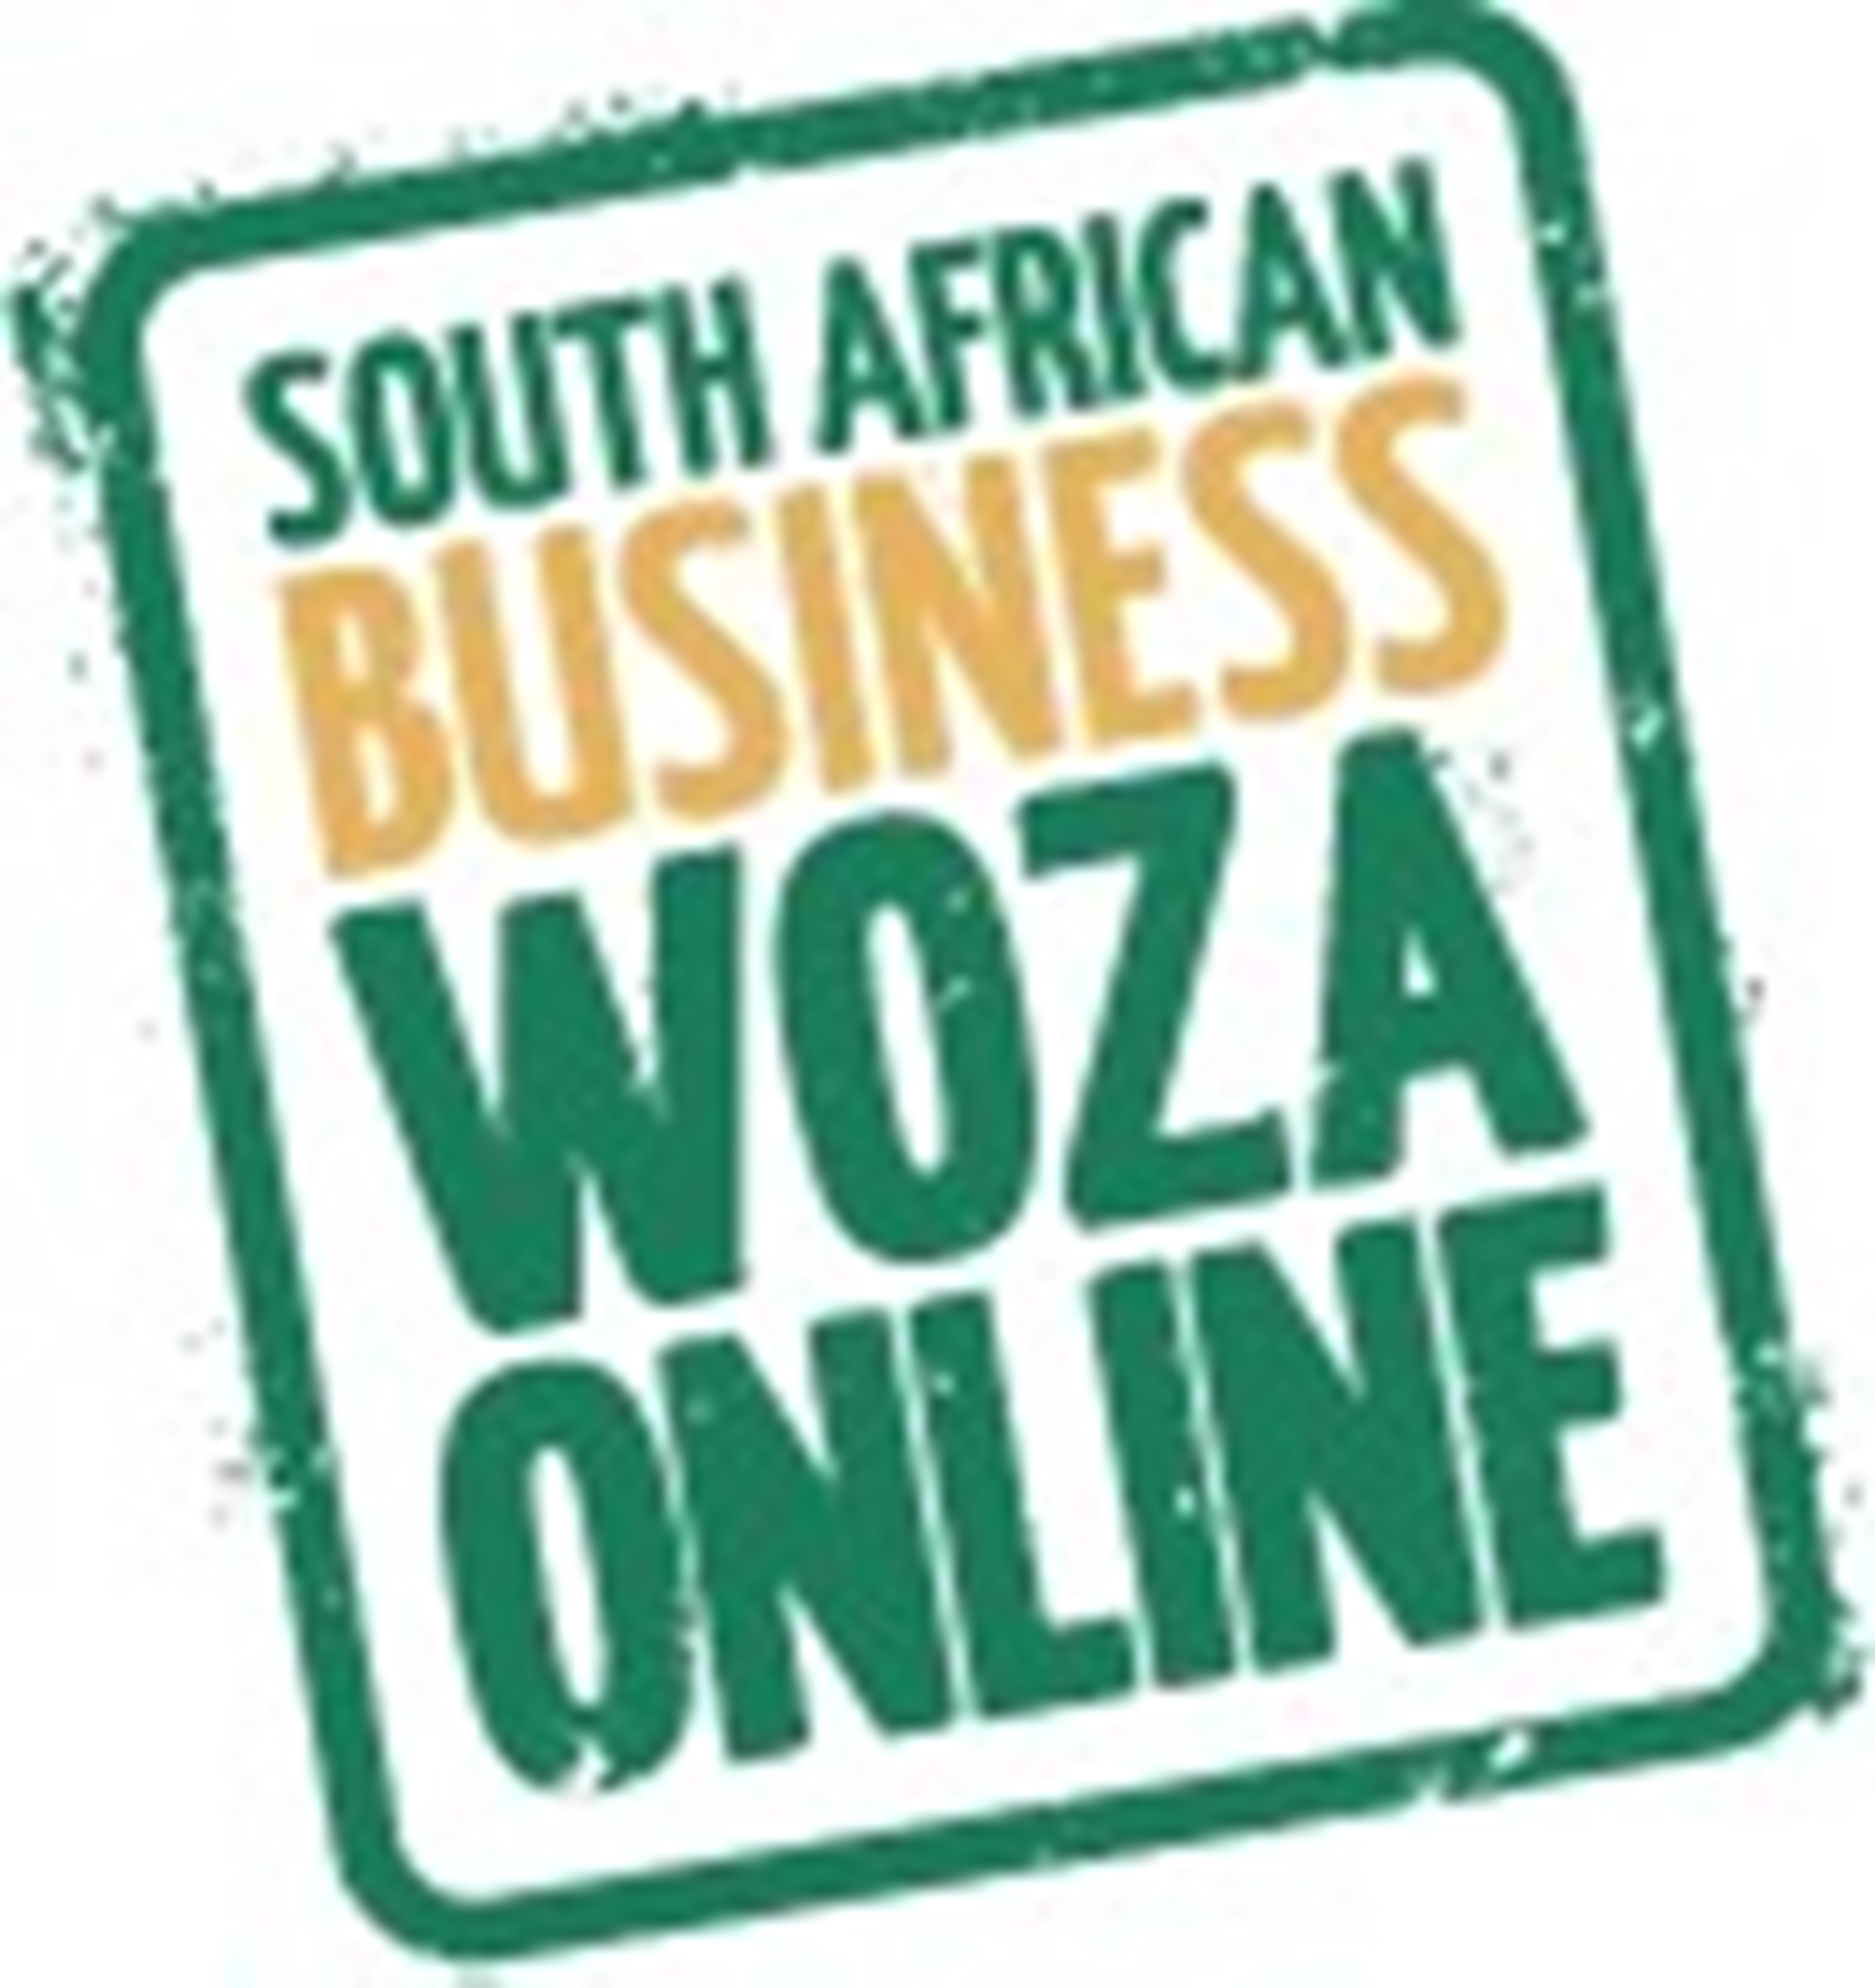 South African Business Woza Online